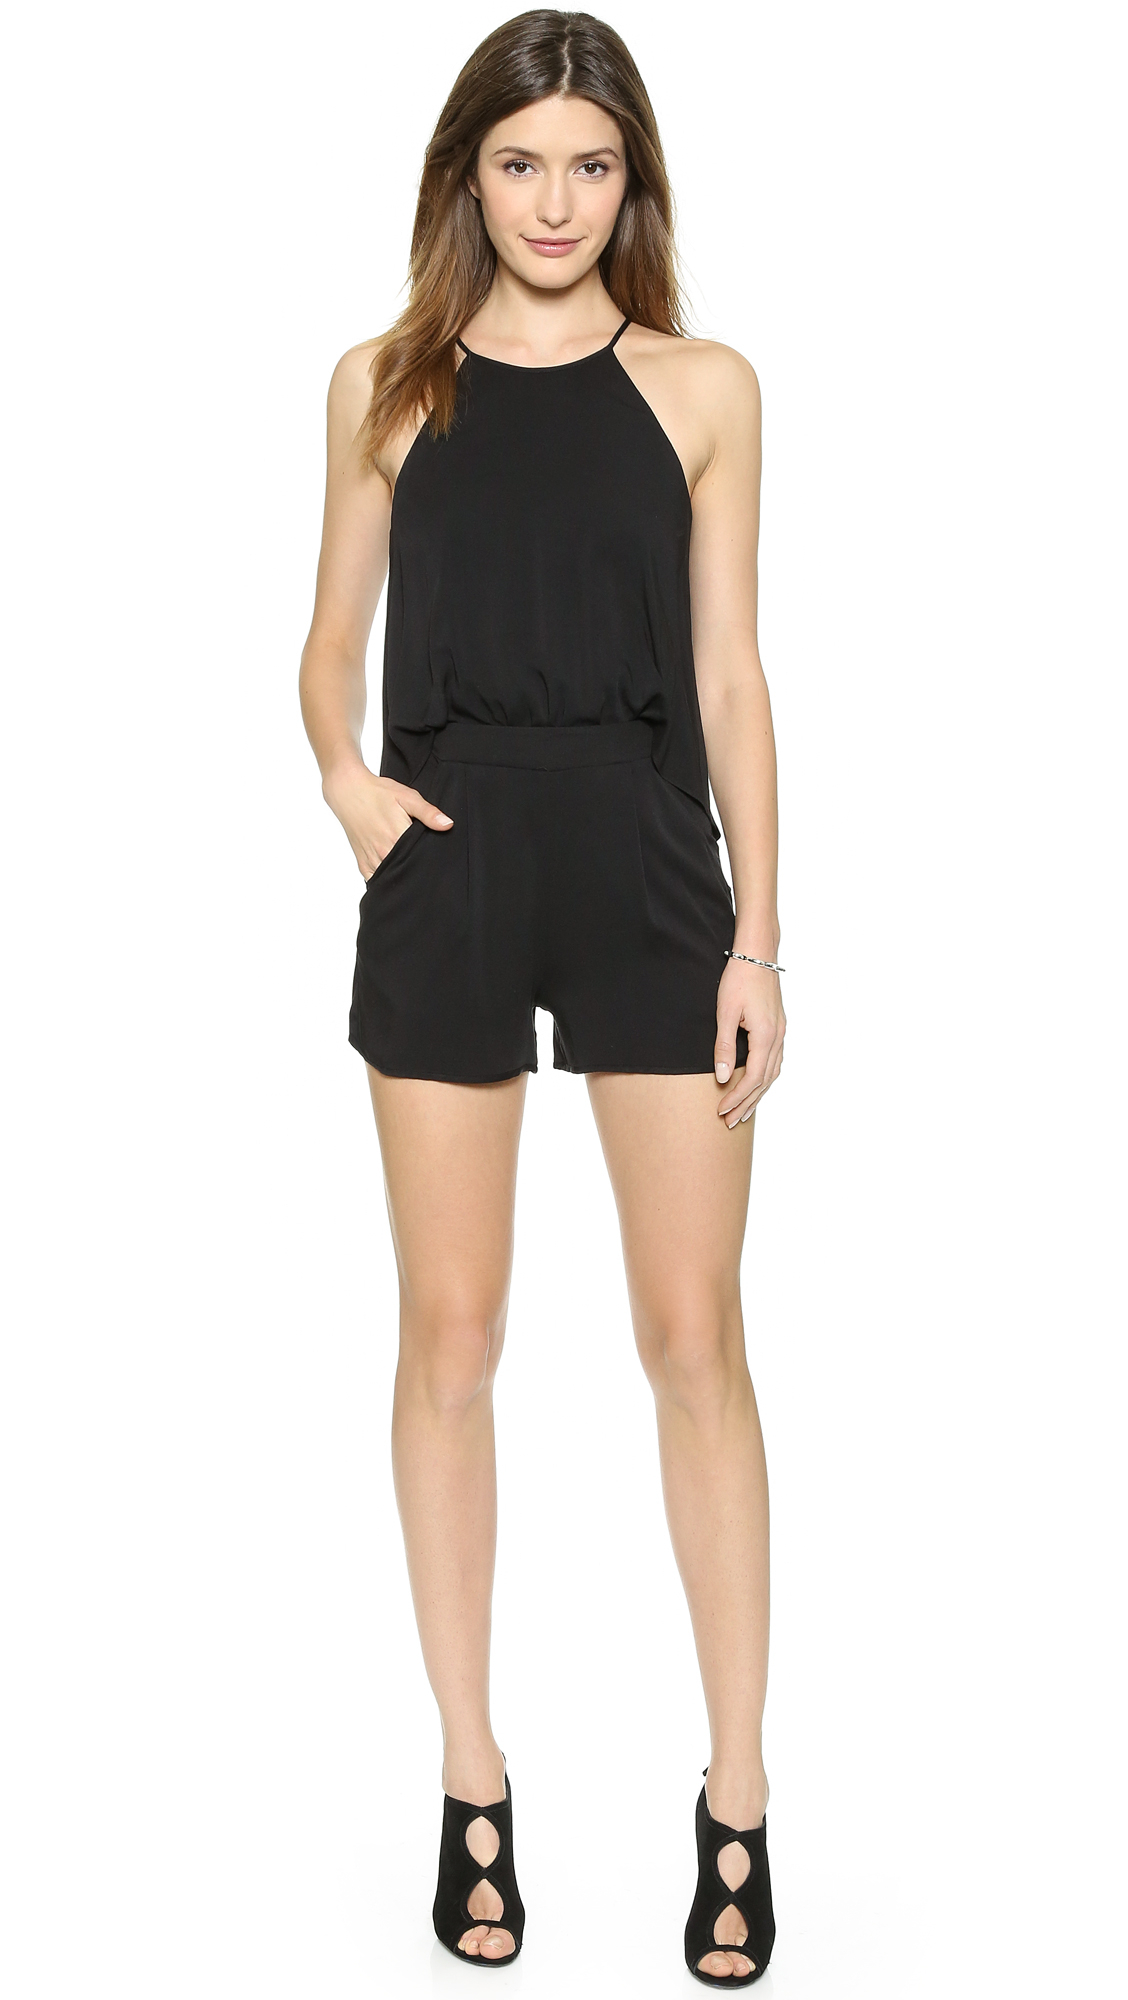 Rompers & Jumpsuits: Free Shipping on orders over $45 at worldofweapons.tk - Your Online Outfits Store! Get 5% in rewards with Club O!